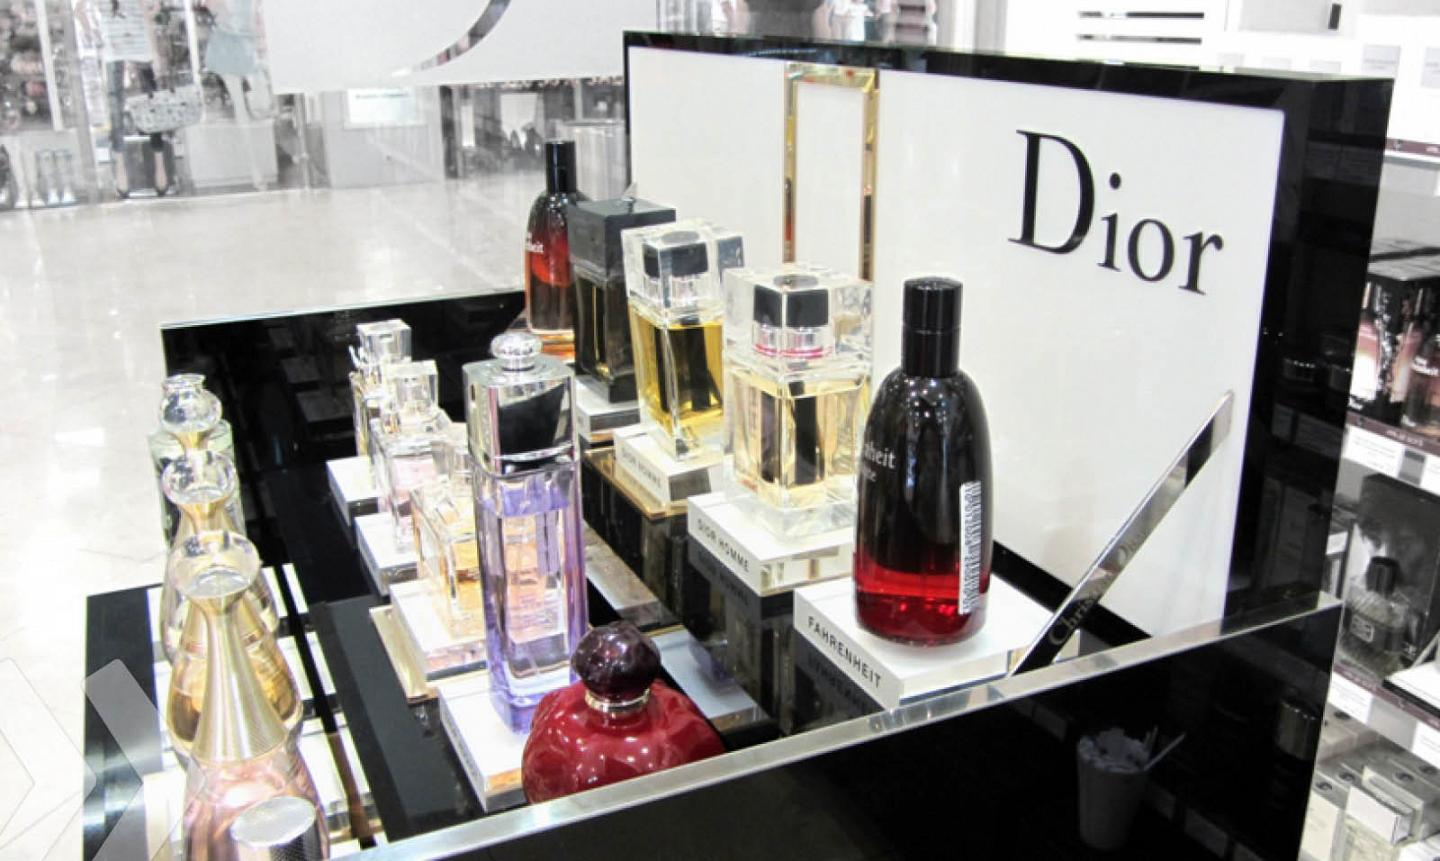 dior 03 display display hersteller point of sale